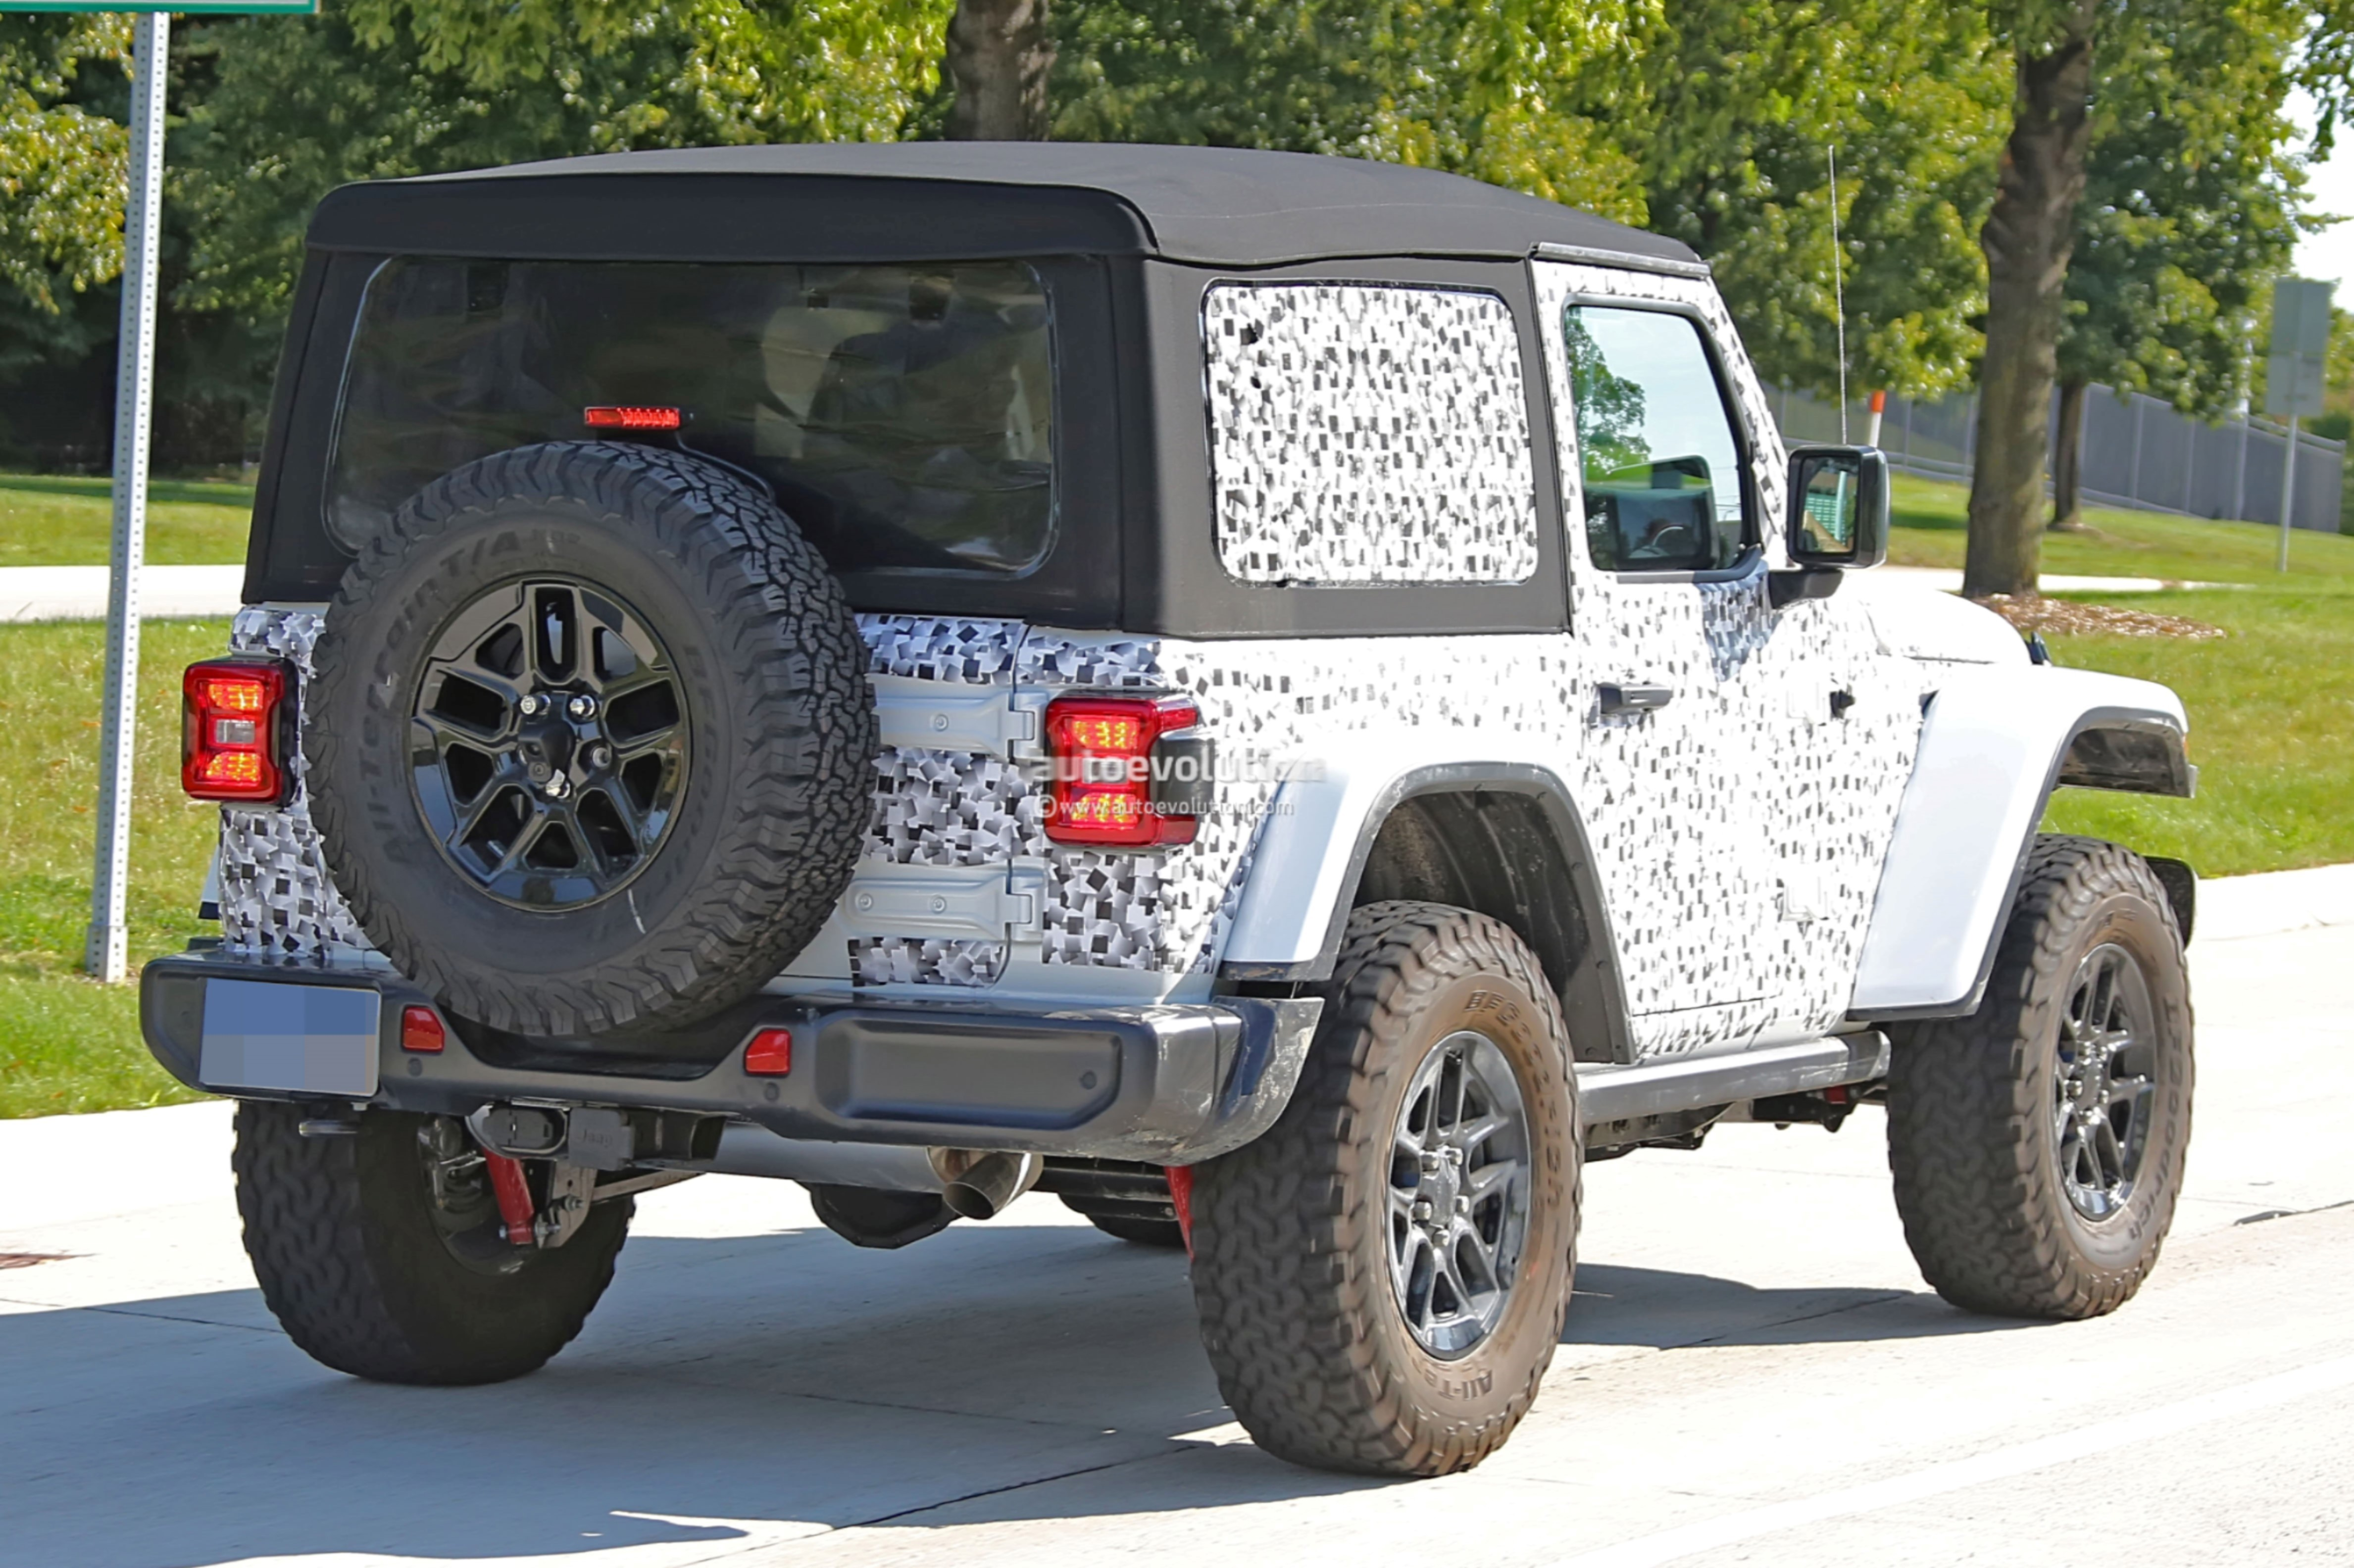 2018 - [Jeep] Wrangler - Page 3 2018-jeep-wrangler-jl-reveals-grille-and-headlights-in-newest-spy-photos_11